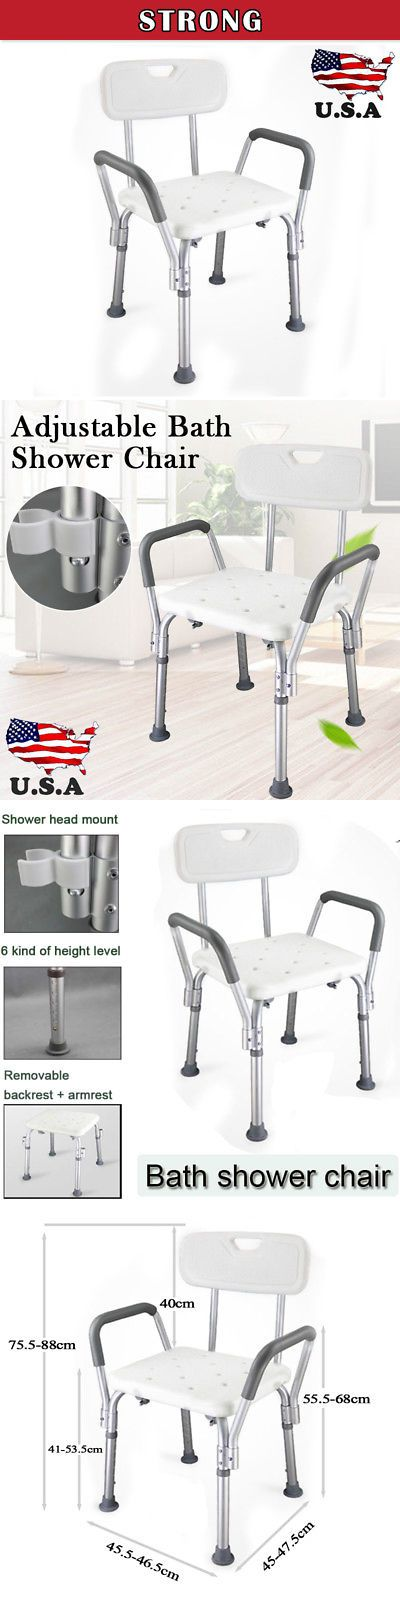 Shower and Bath Seats: Medical Shower Chair Bathtub Bench Bath Seat With Adjustable Legs And Back Support -> BUY IT NOW ONLY: $30.59 on eBay!